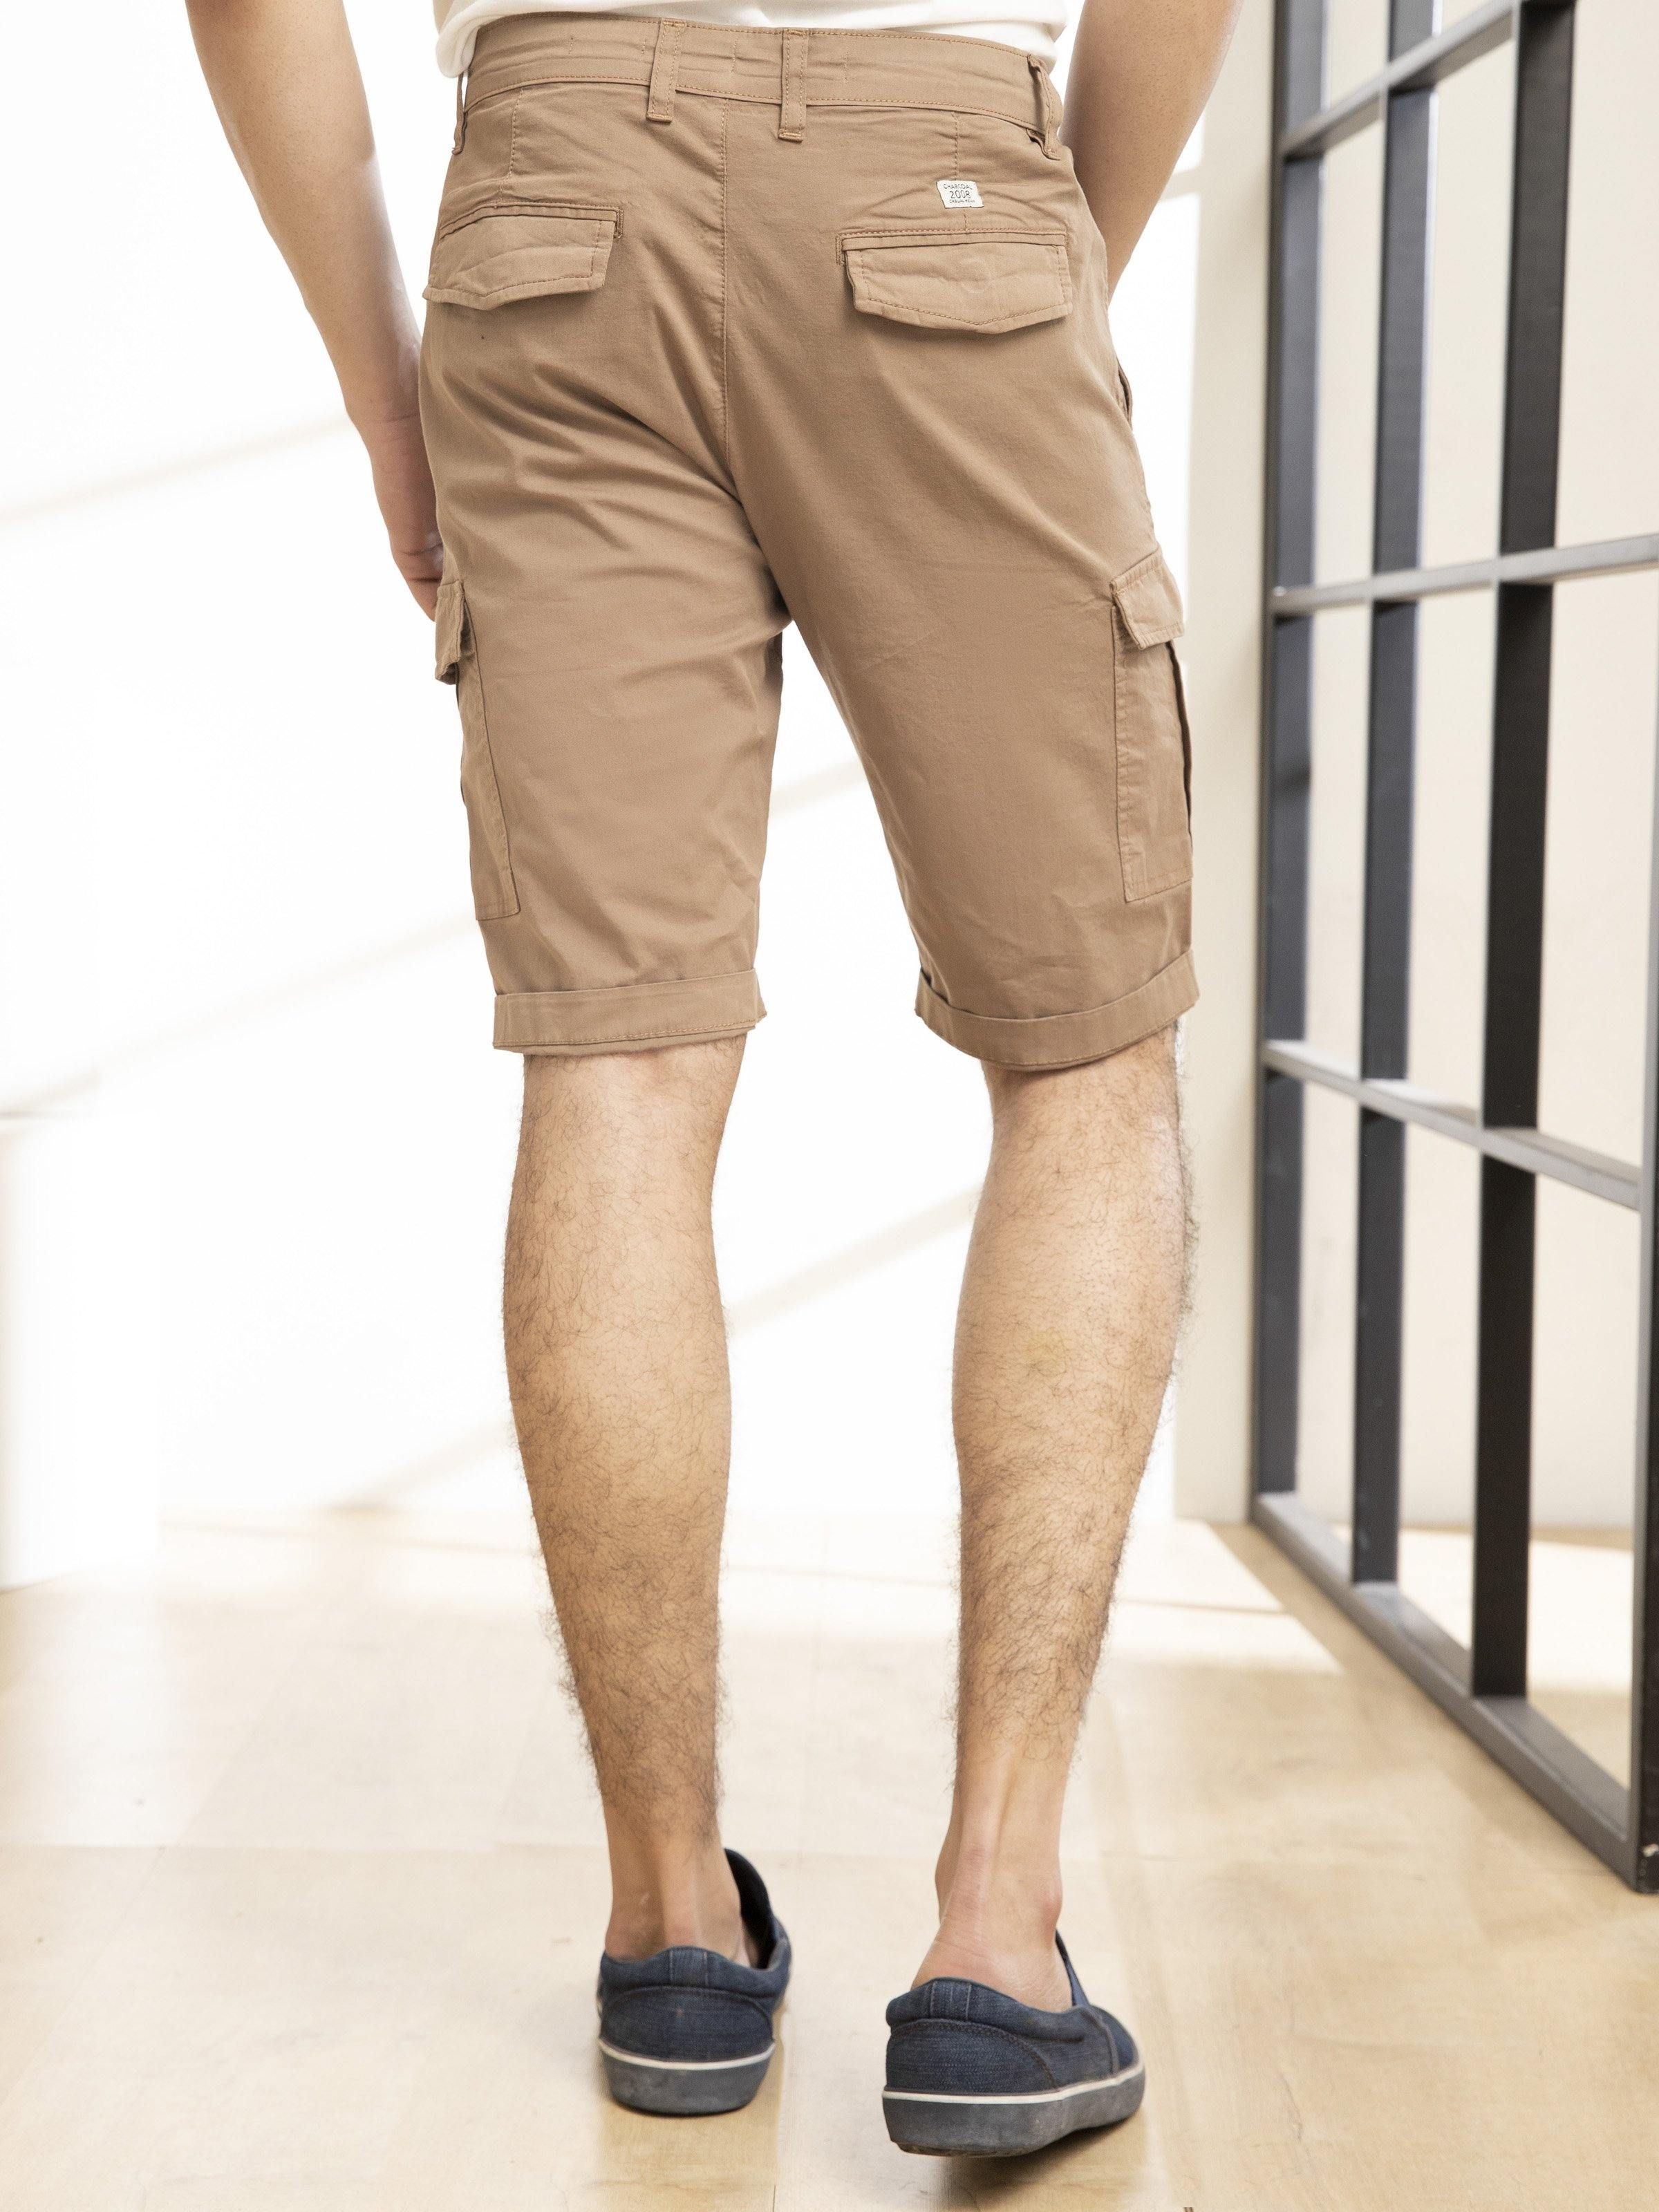 CARGO SHORTS KHAKI - Charcoal Clothing